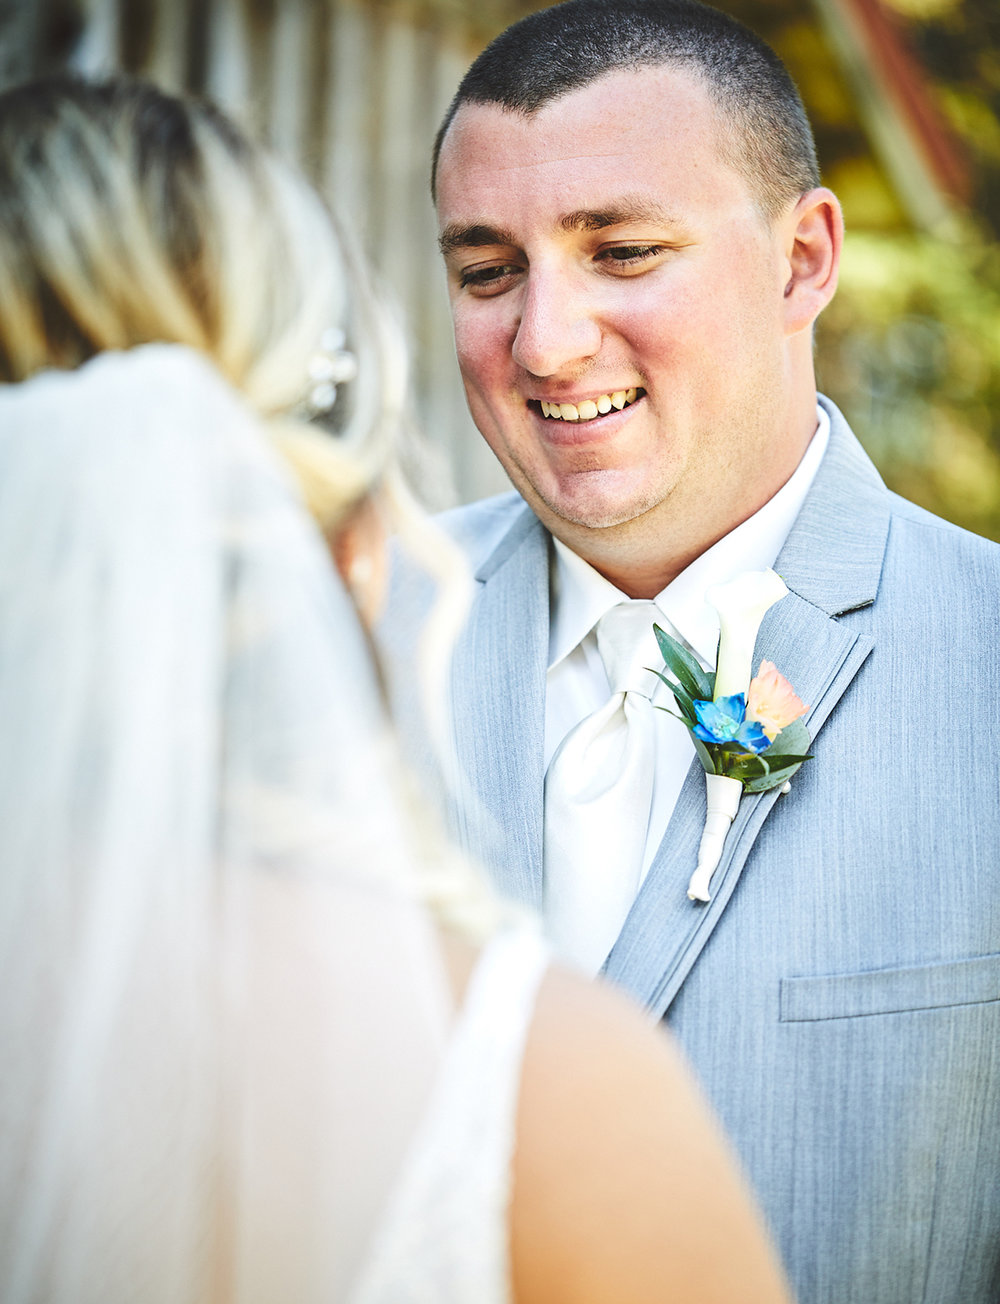 180811_RosebudEstatesWeddingPhotography_WesternNYWeddingPhotographer_By_BriJohnsonWeddings_0059.jpg